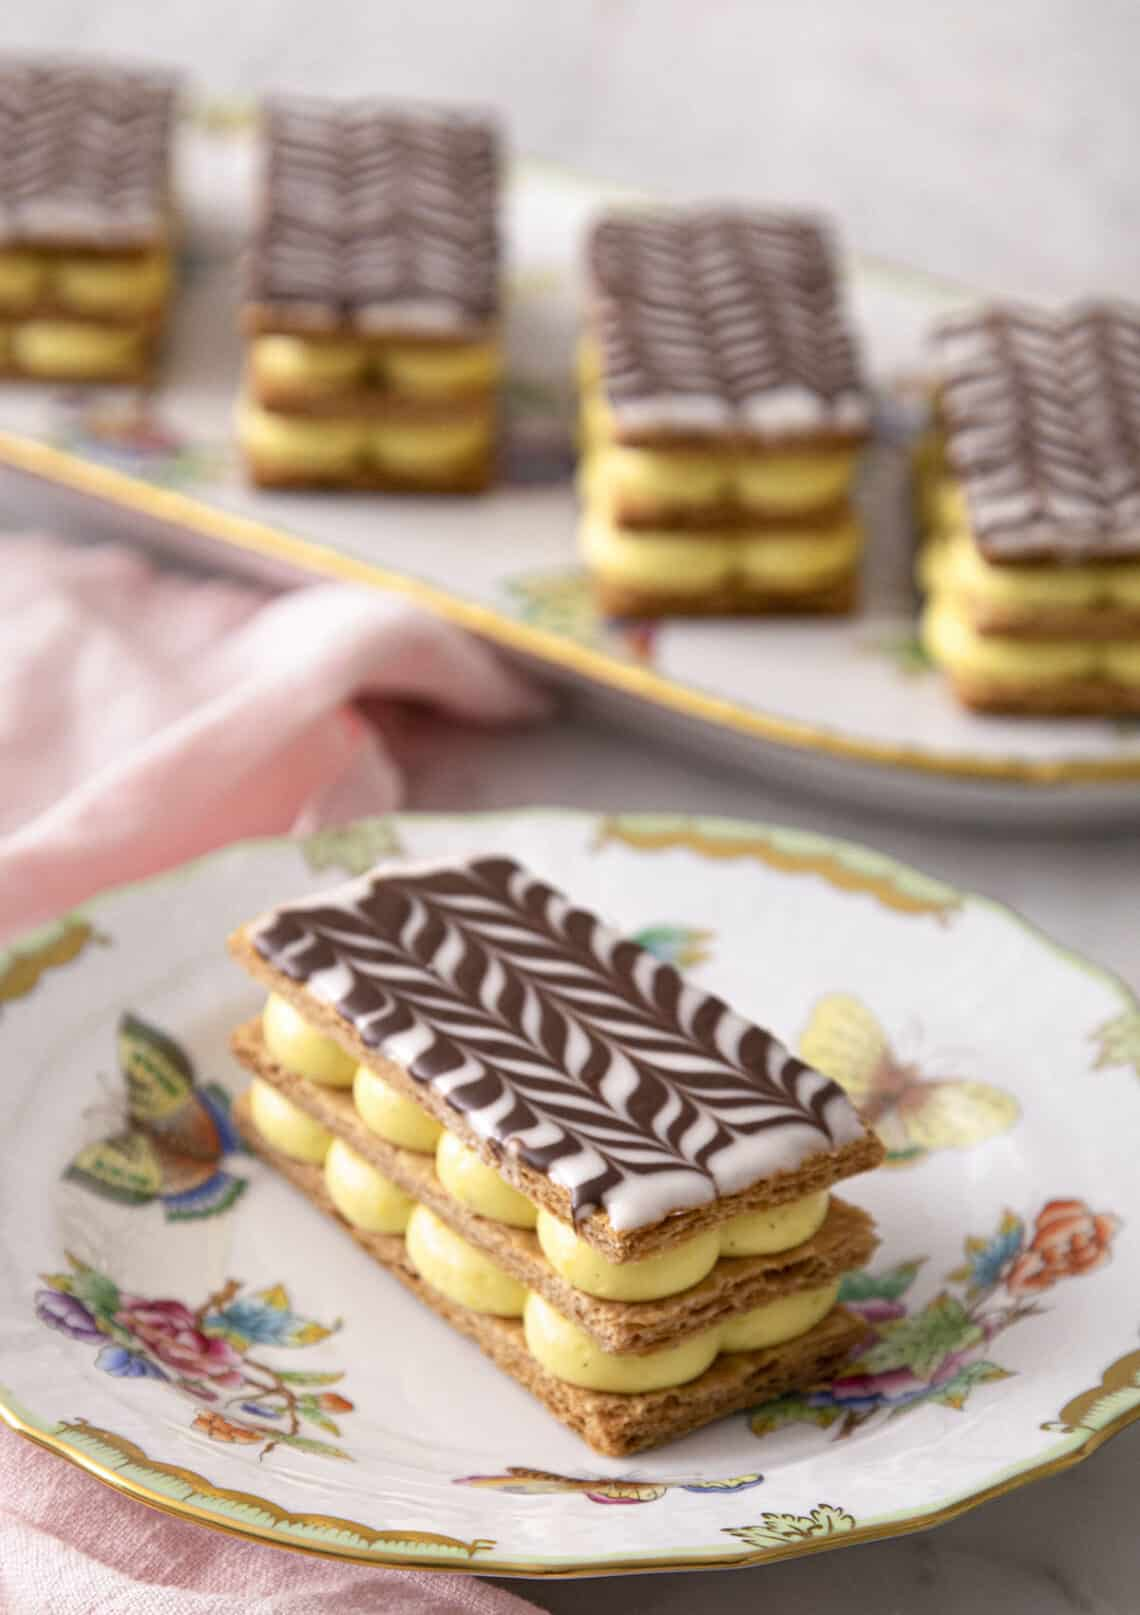 A Mille Feuille on a porcelaine plate.